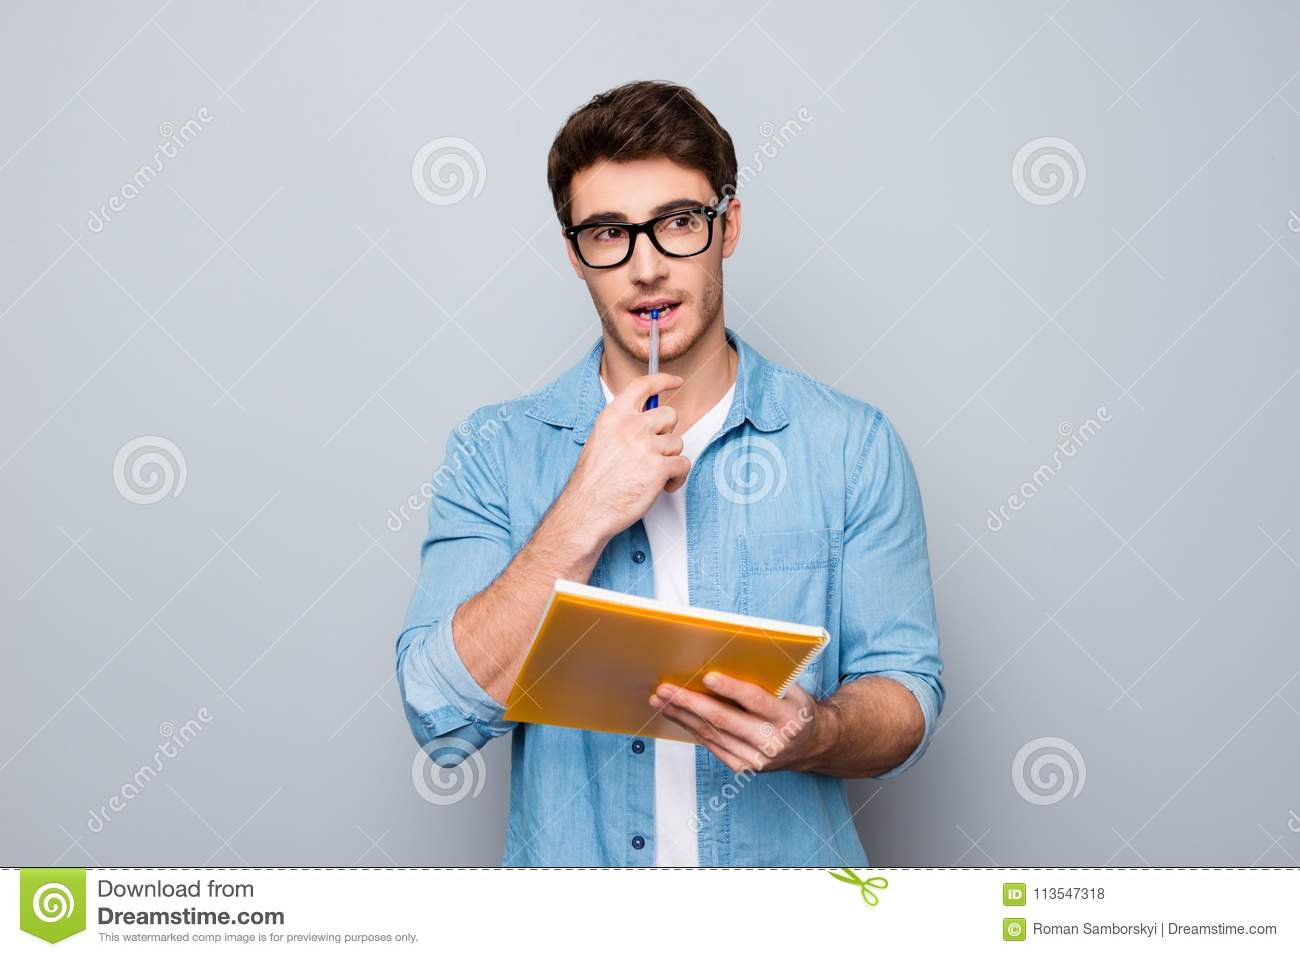 Close up portrait of pondering handsome lovely adorable cute smart clever attractive intelligent guy biting pen thinking how to so